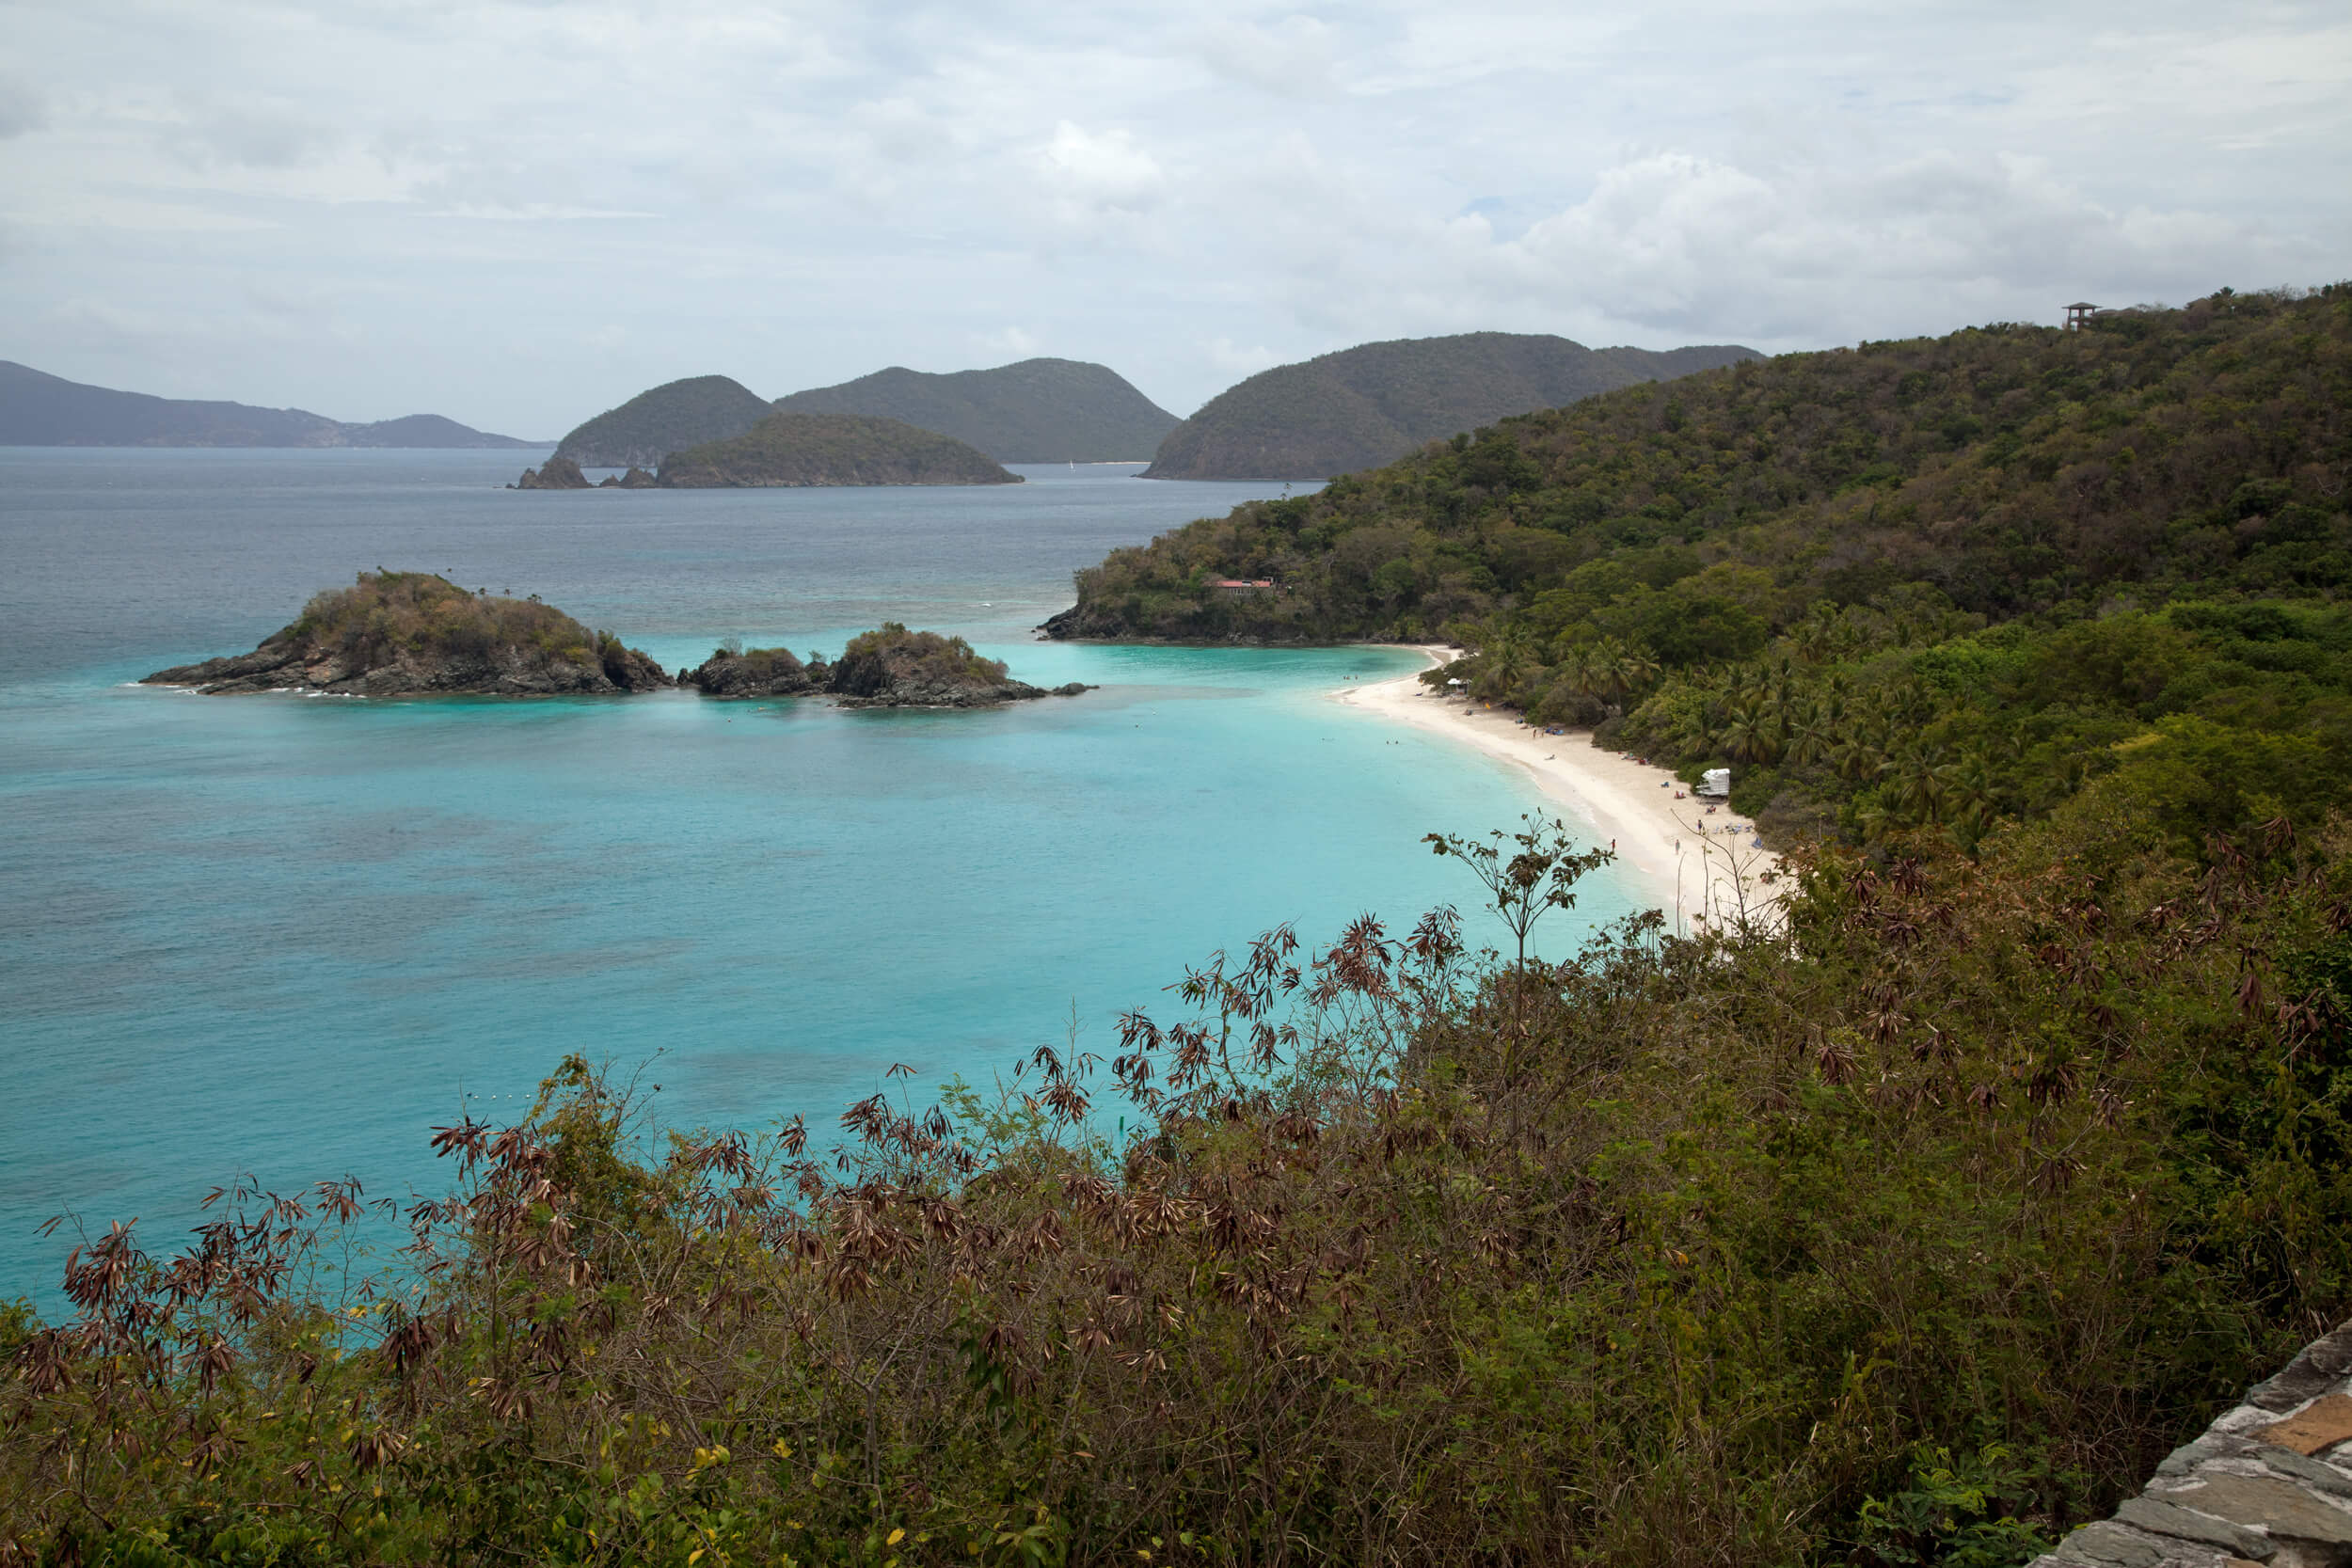 Trunk Bay - St. John's most popular beach and one of the world's most photographed.